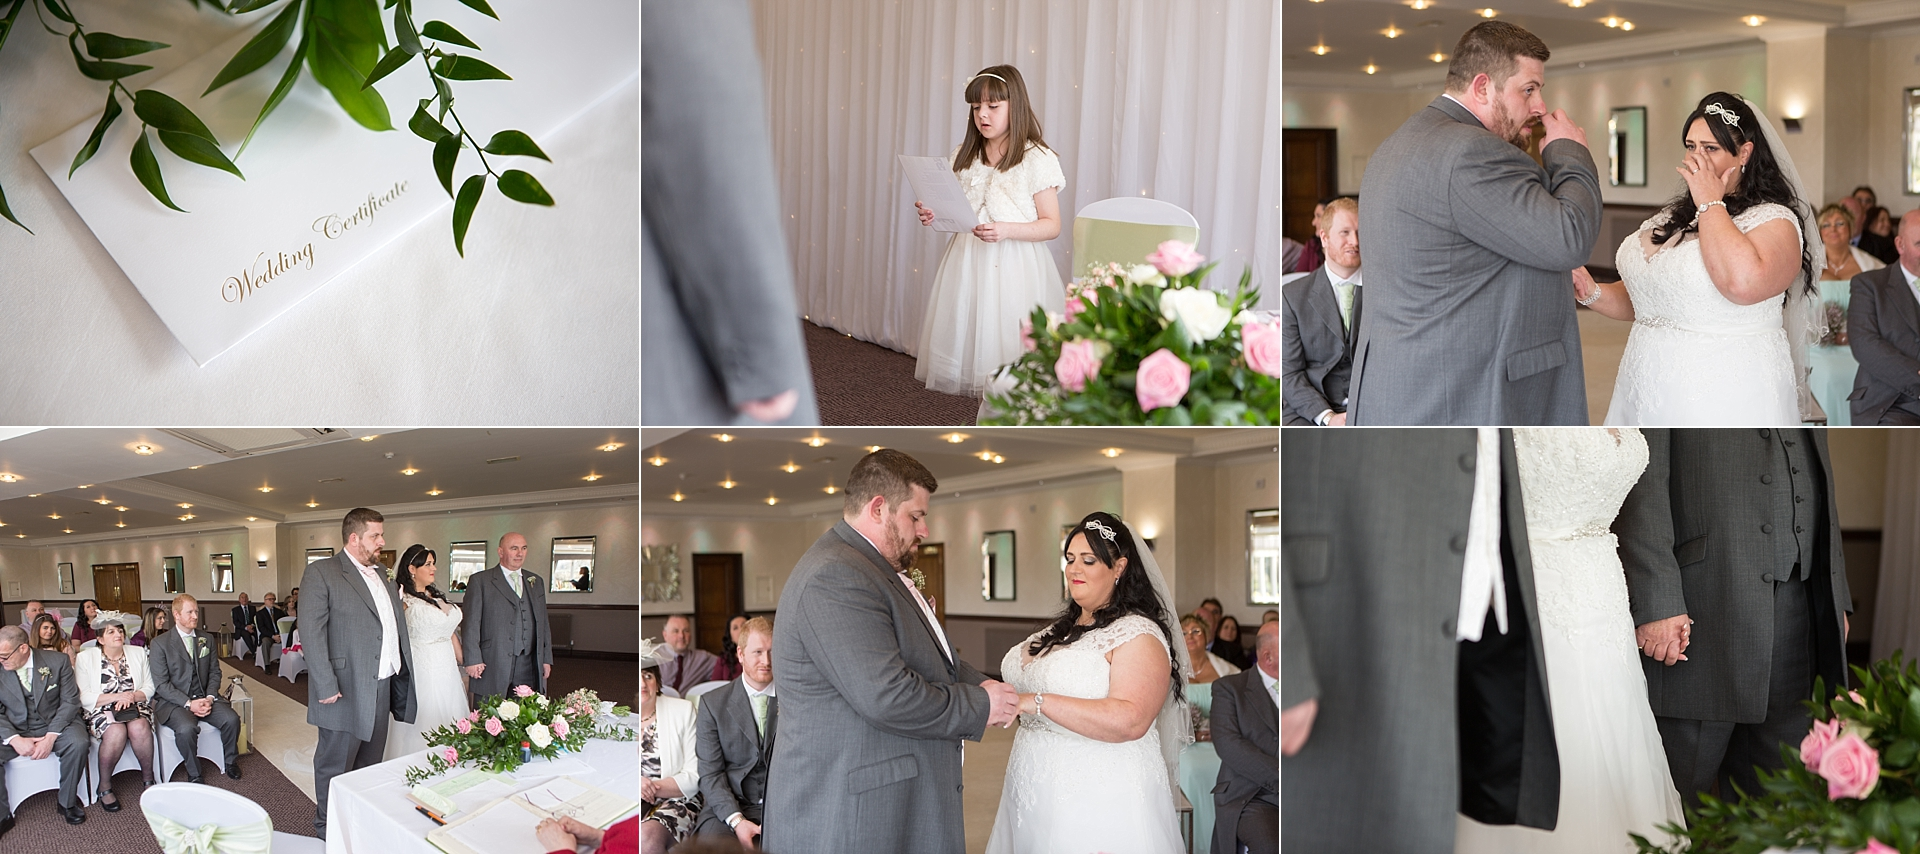 wedding photographer moat house acton trussell stafford 4.jpg